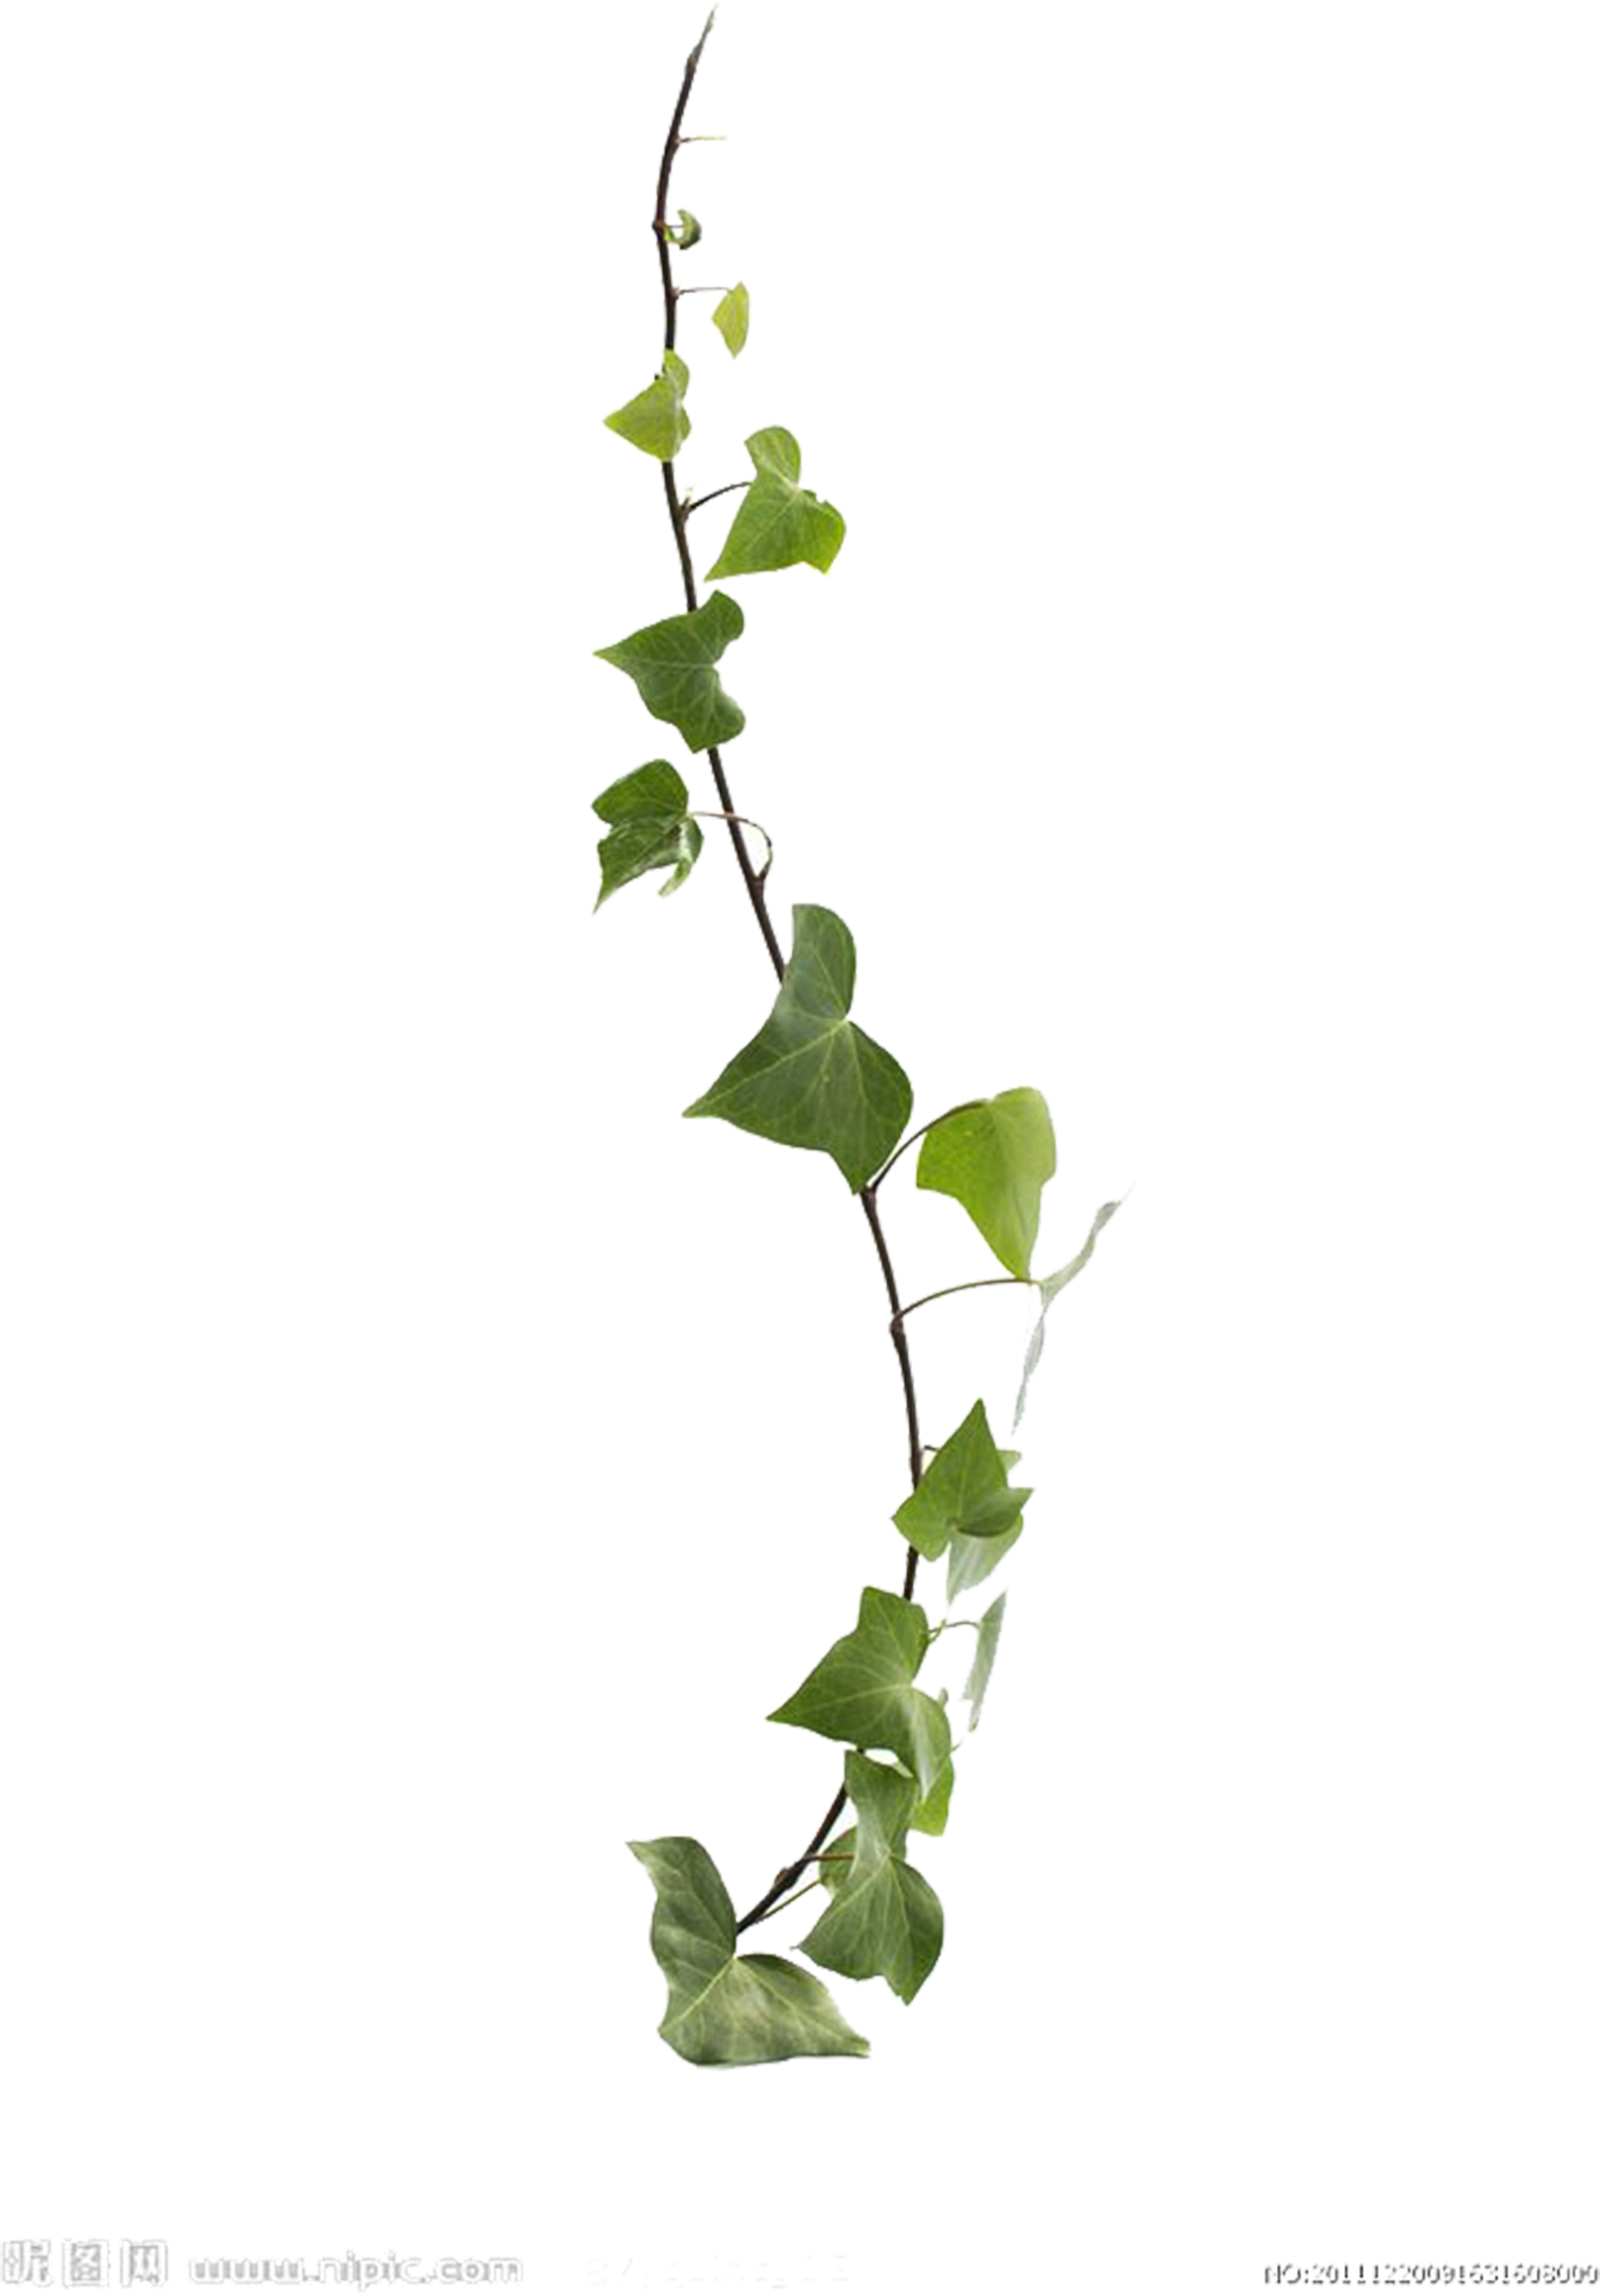 Creepers clipart graphic free stock HD Available Plant Leaf For Creeper Vine Virginia Clipart - Creepers ... graphic free stock